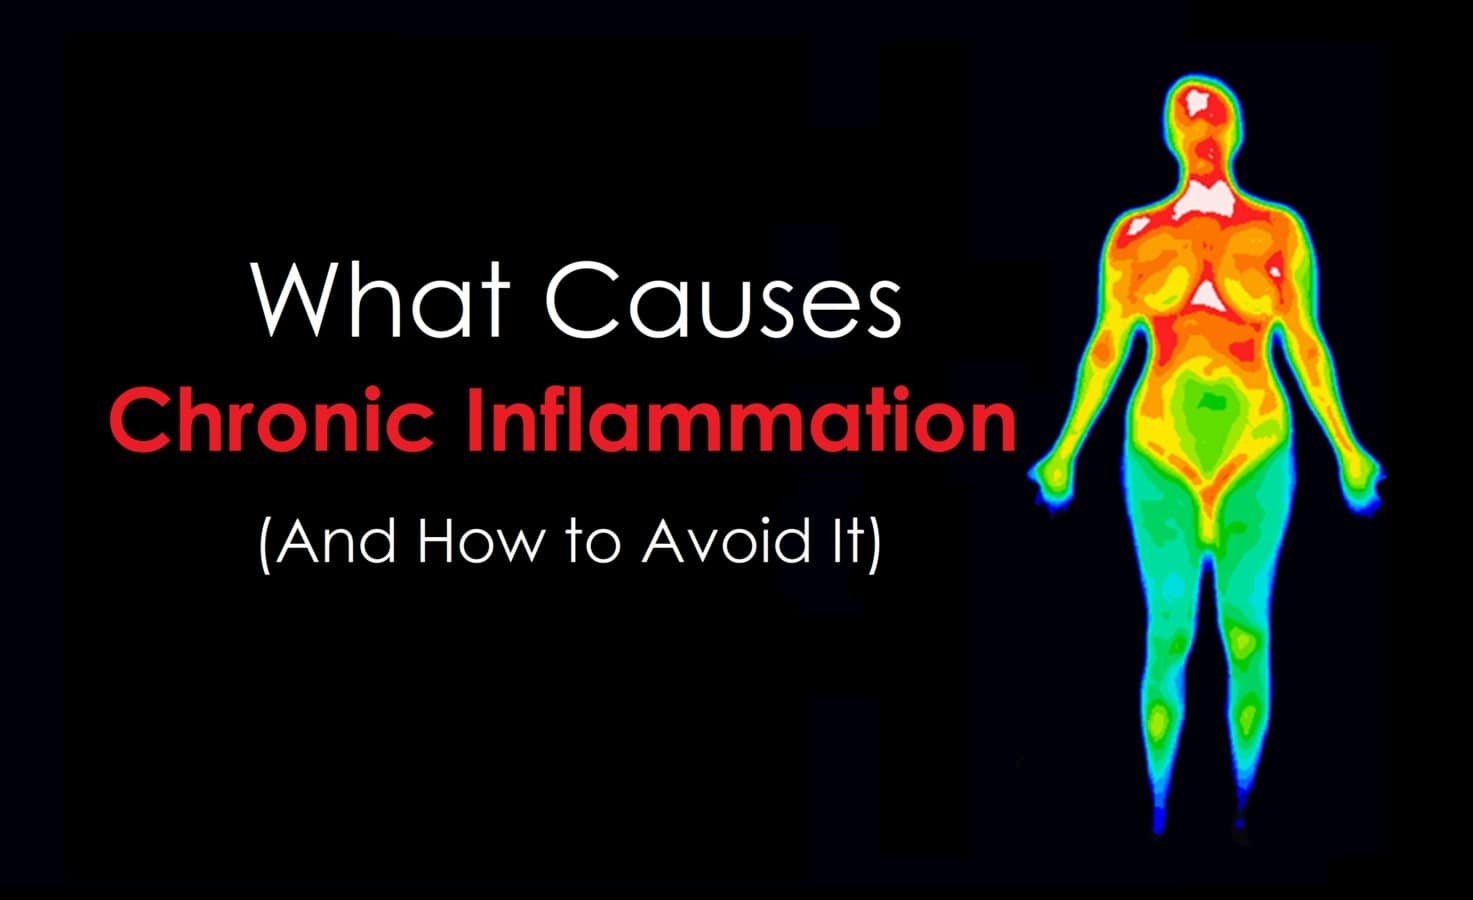 What causes vaginal inflammation